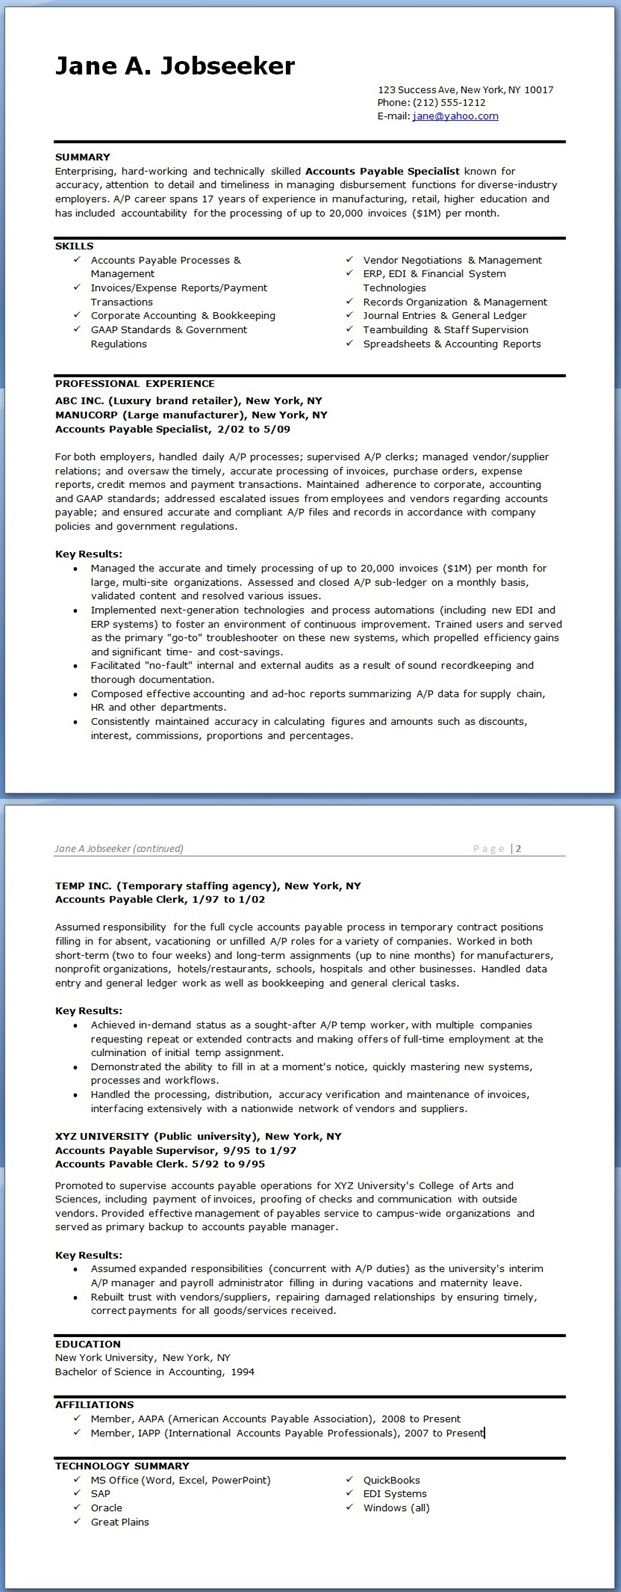 Accounts Payable Specialist Resume Templates Resume Downloads Accounts Payable Accounting Professional Resume Examples